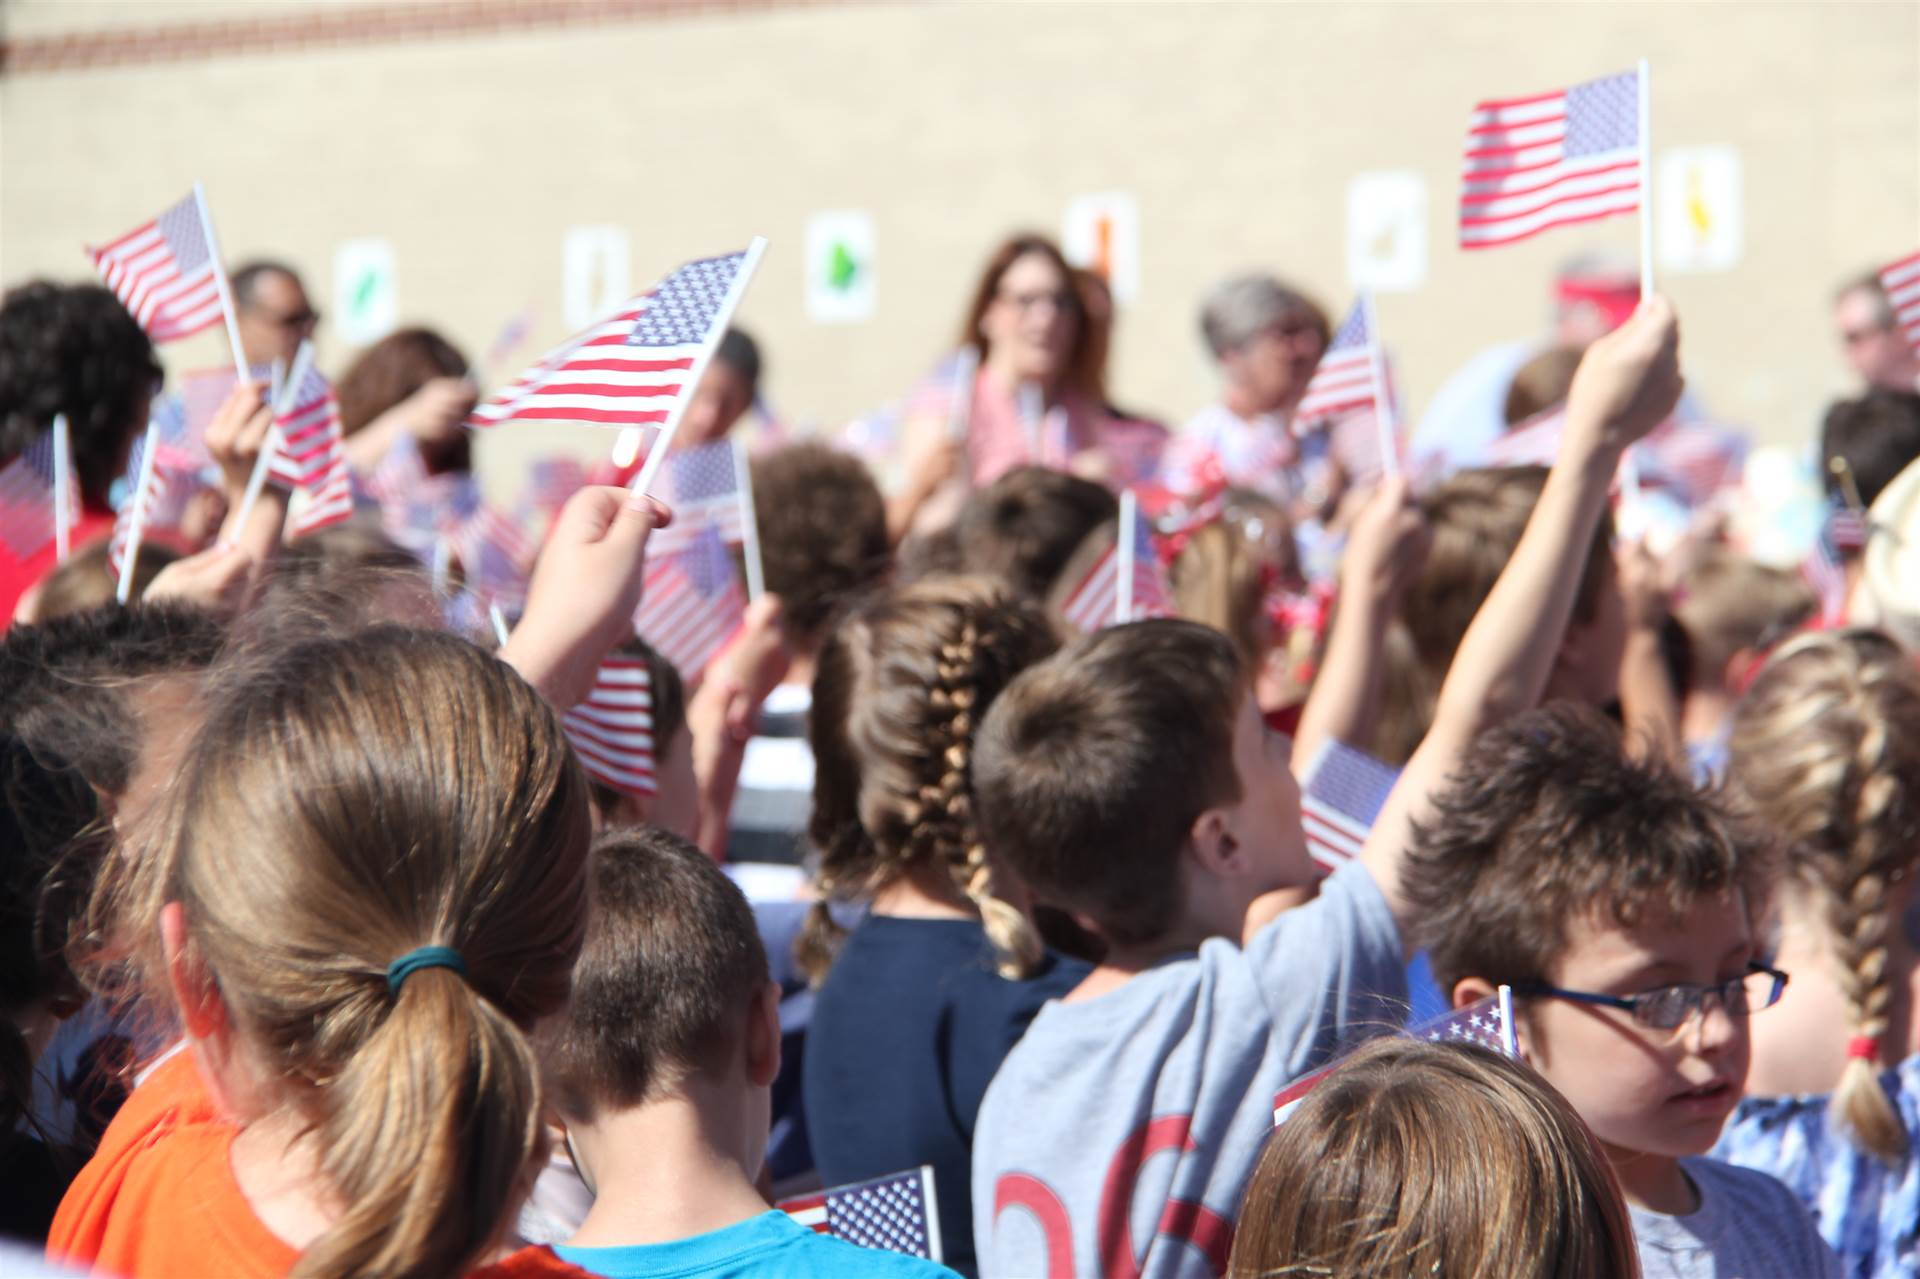 Elementary students wave small flags in the air at annual Flag Day event